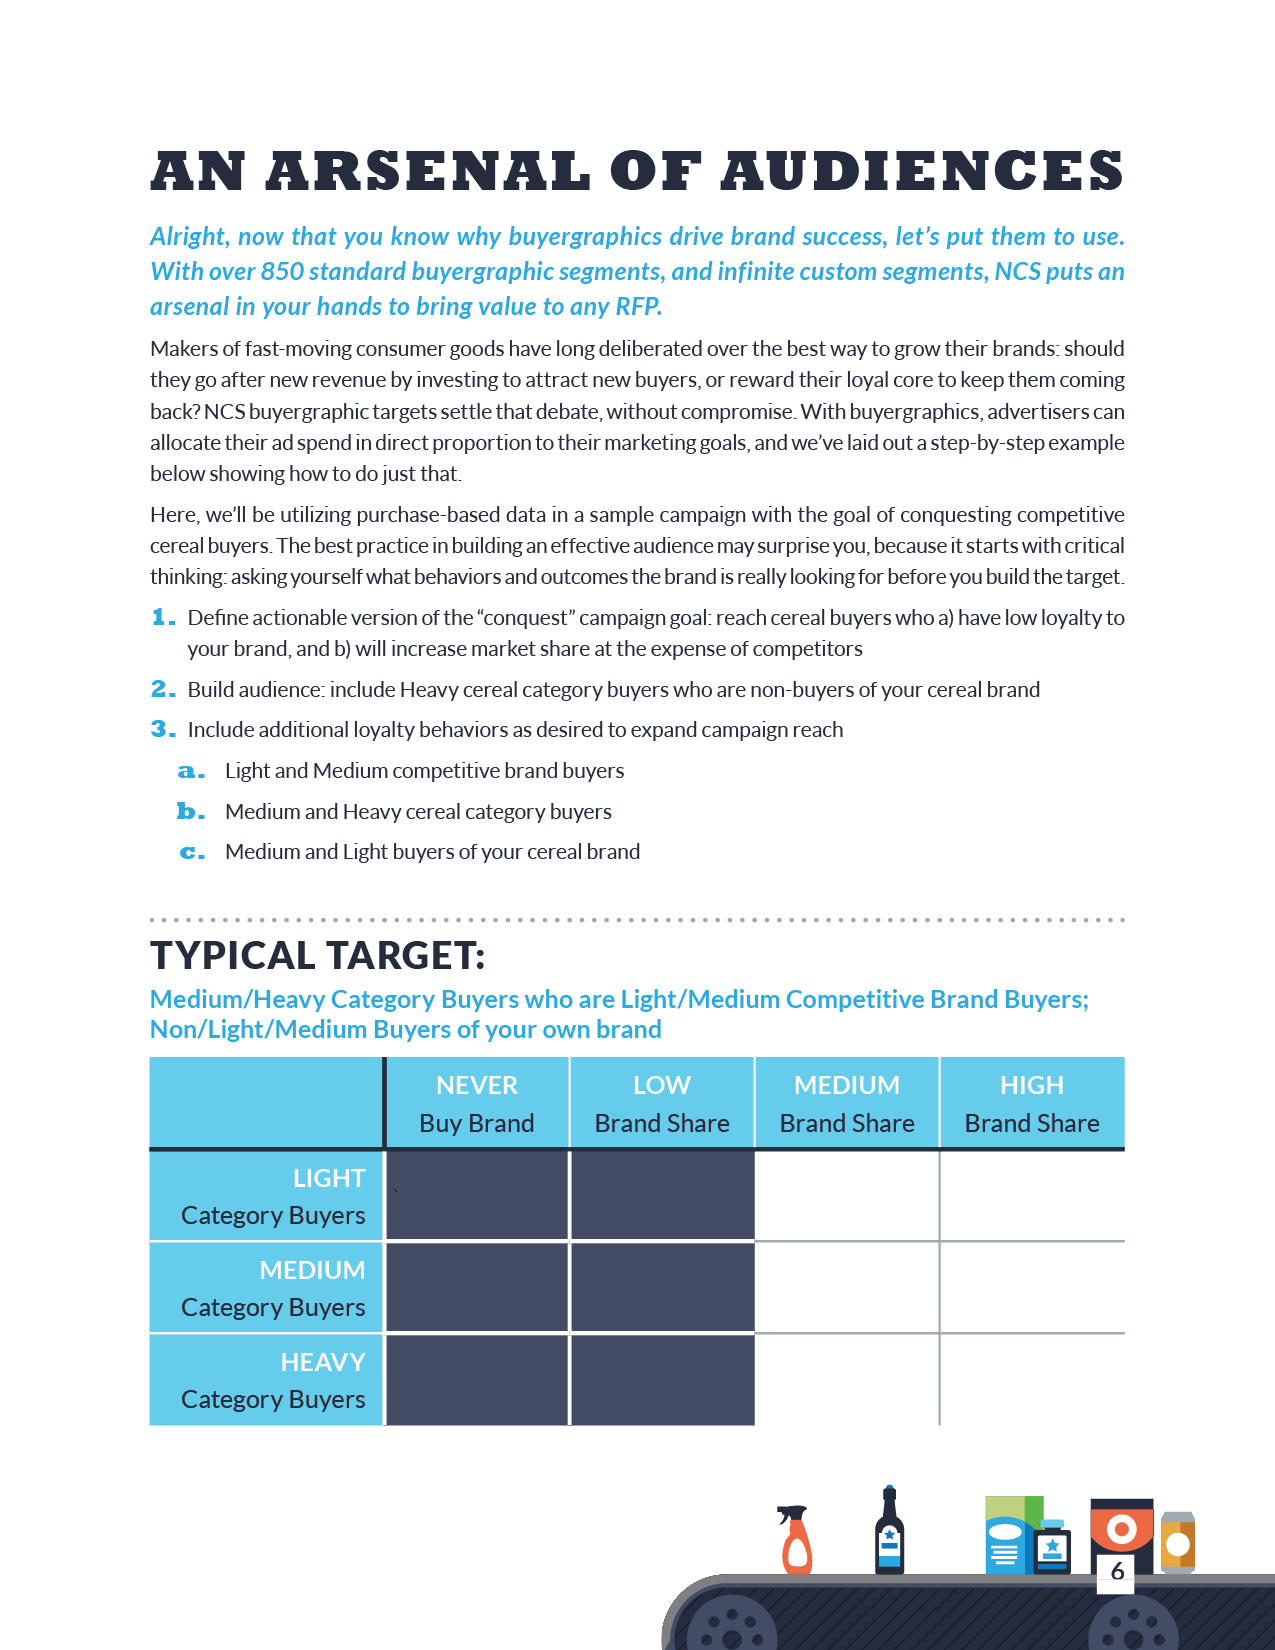 How to Grow CPG Business, inside page 6